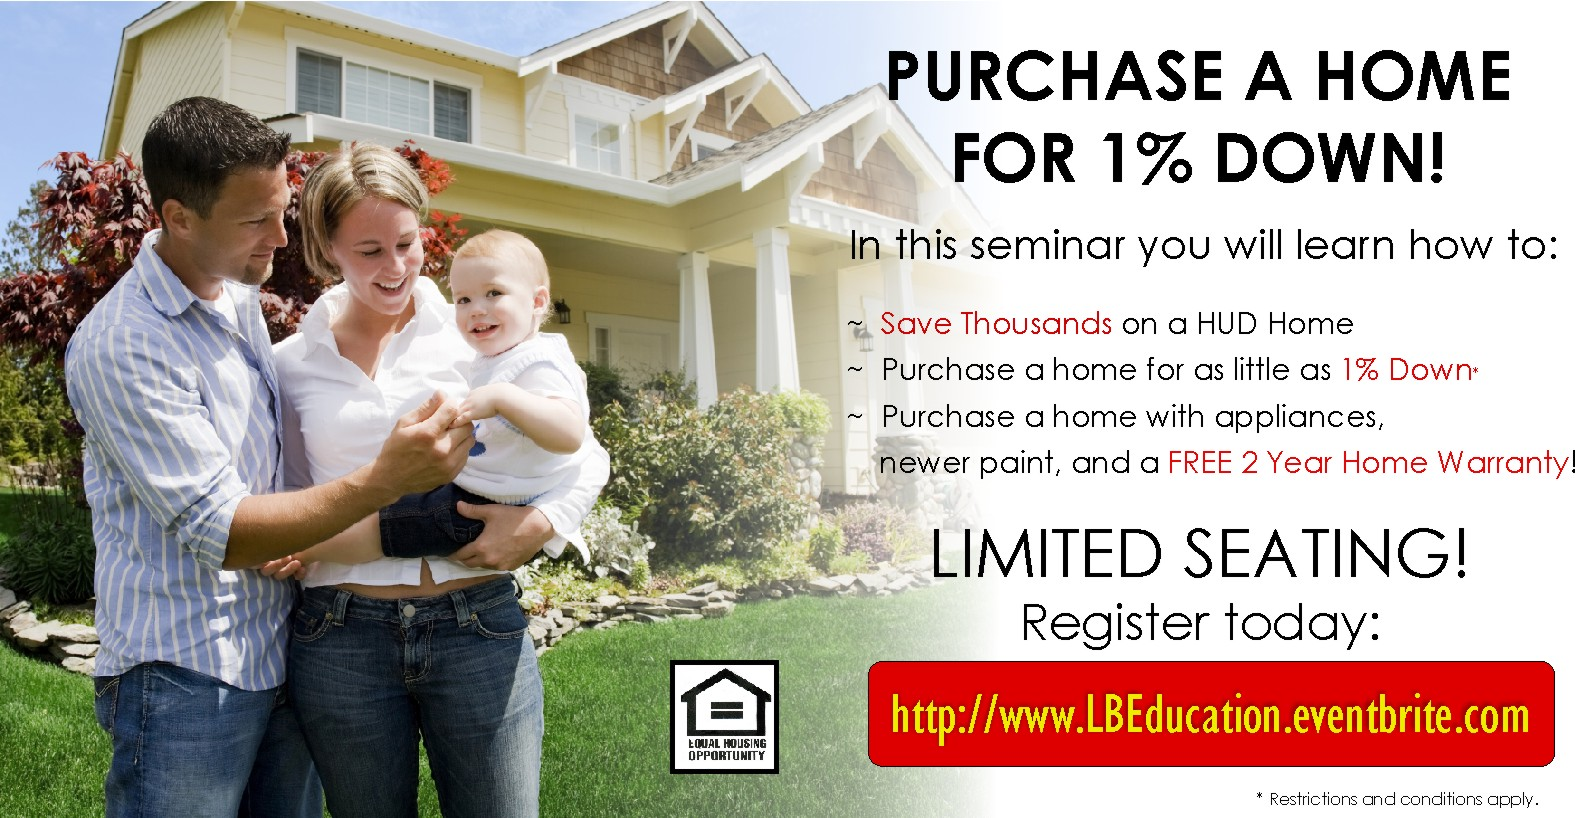 Save Thousands On Purchasing a HUD Home!